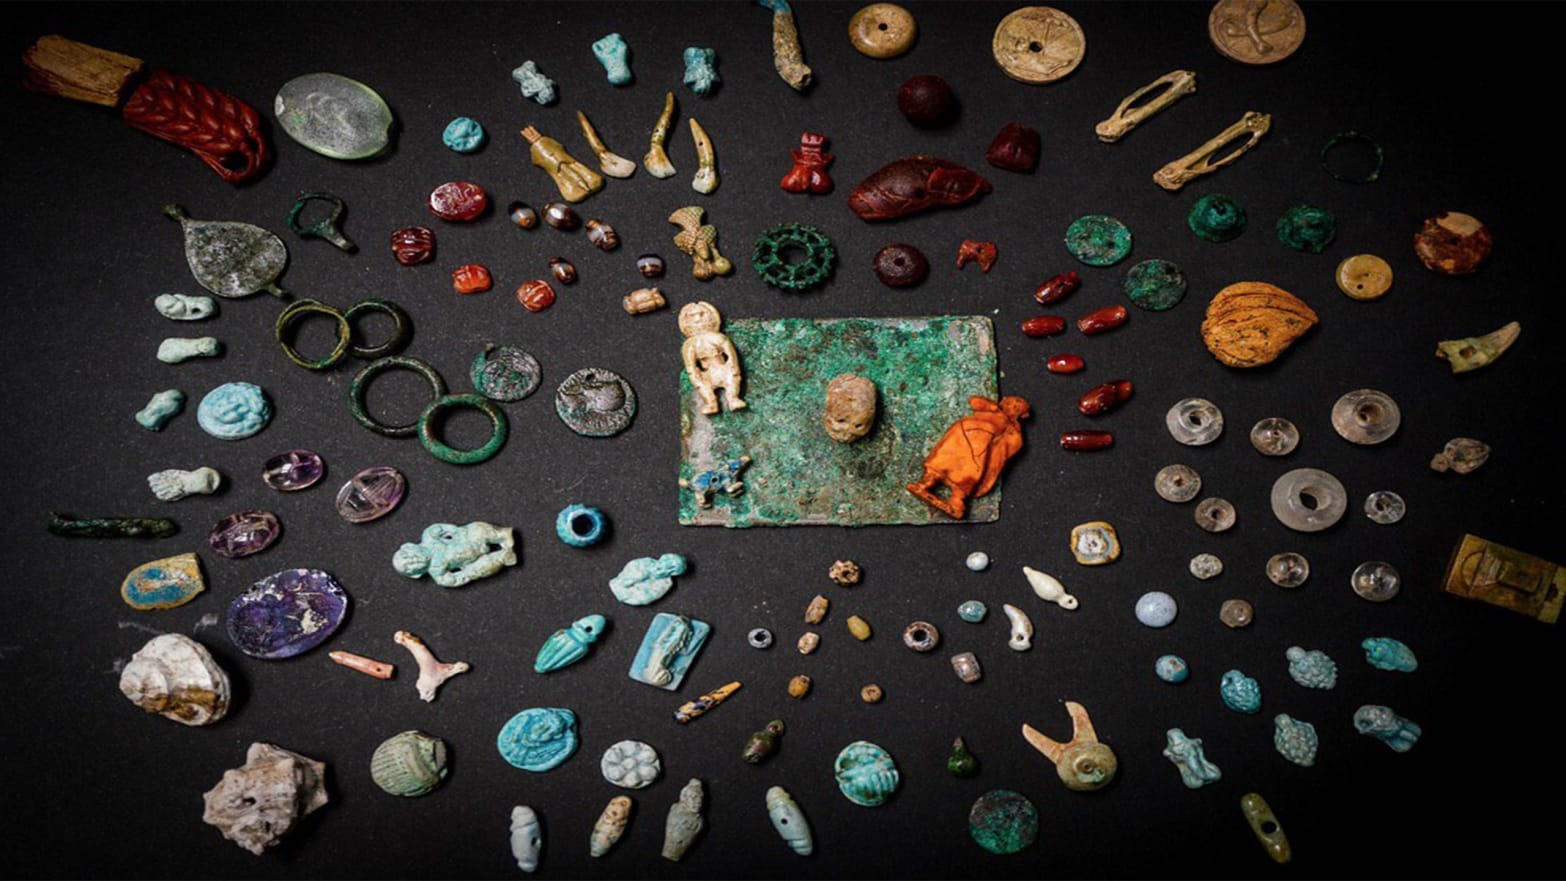 Pompeii's Latest Find? Tiny Penises and Seduction Charms